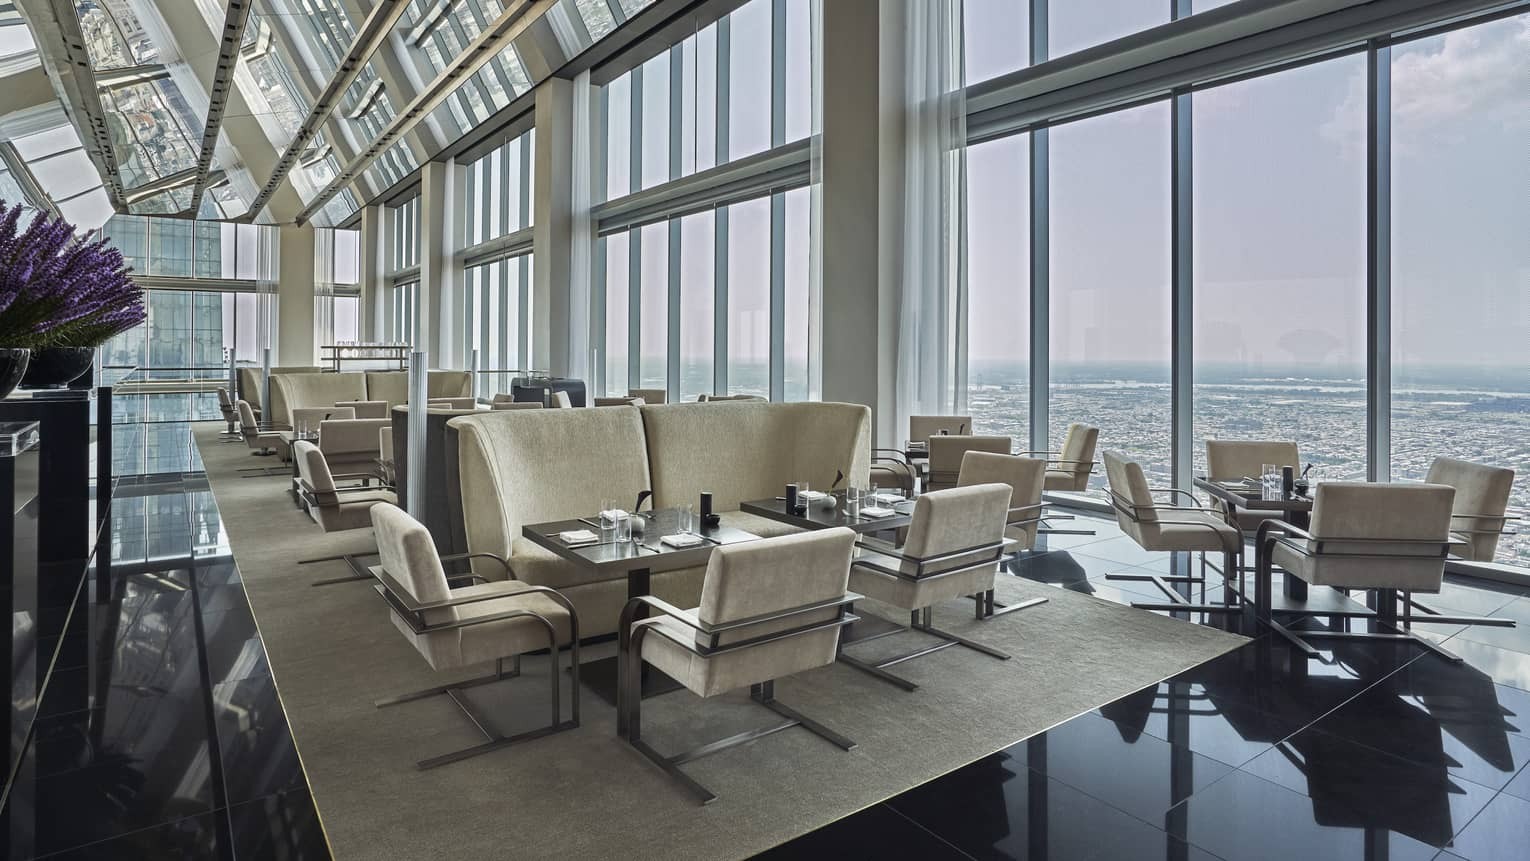 A well lit lounge area in the Skyhigh Lounge overlooking the cityscape.